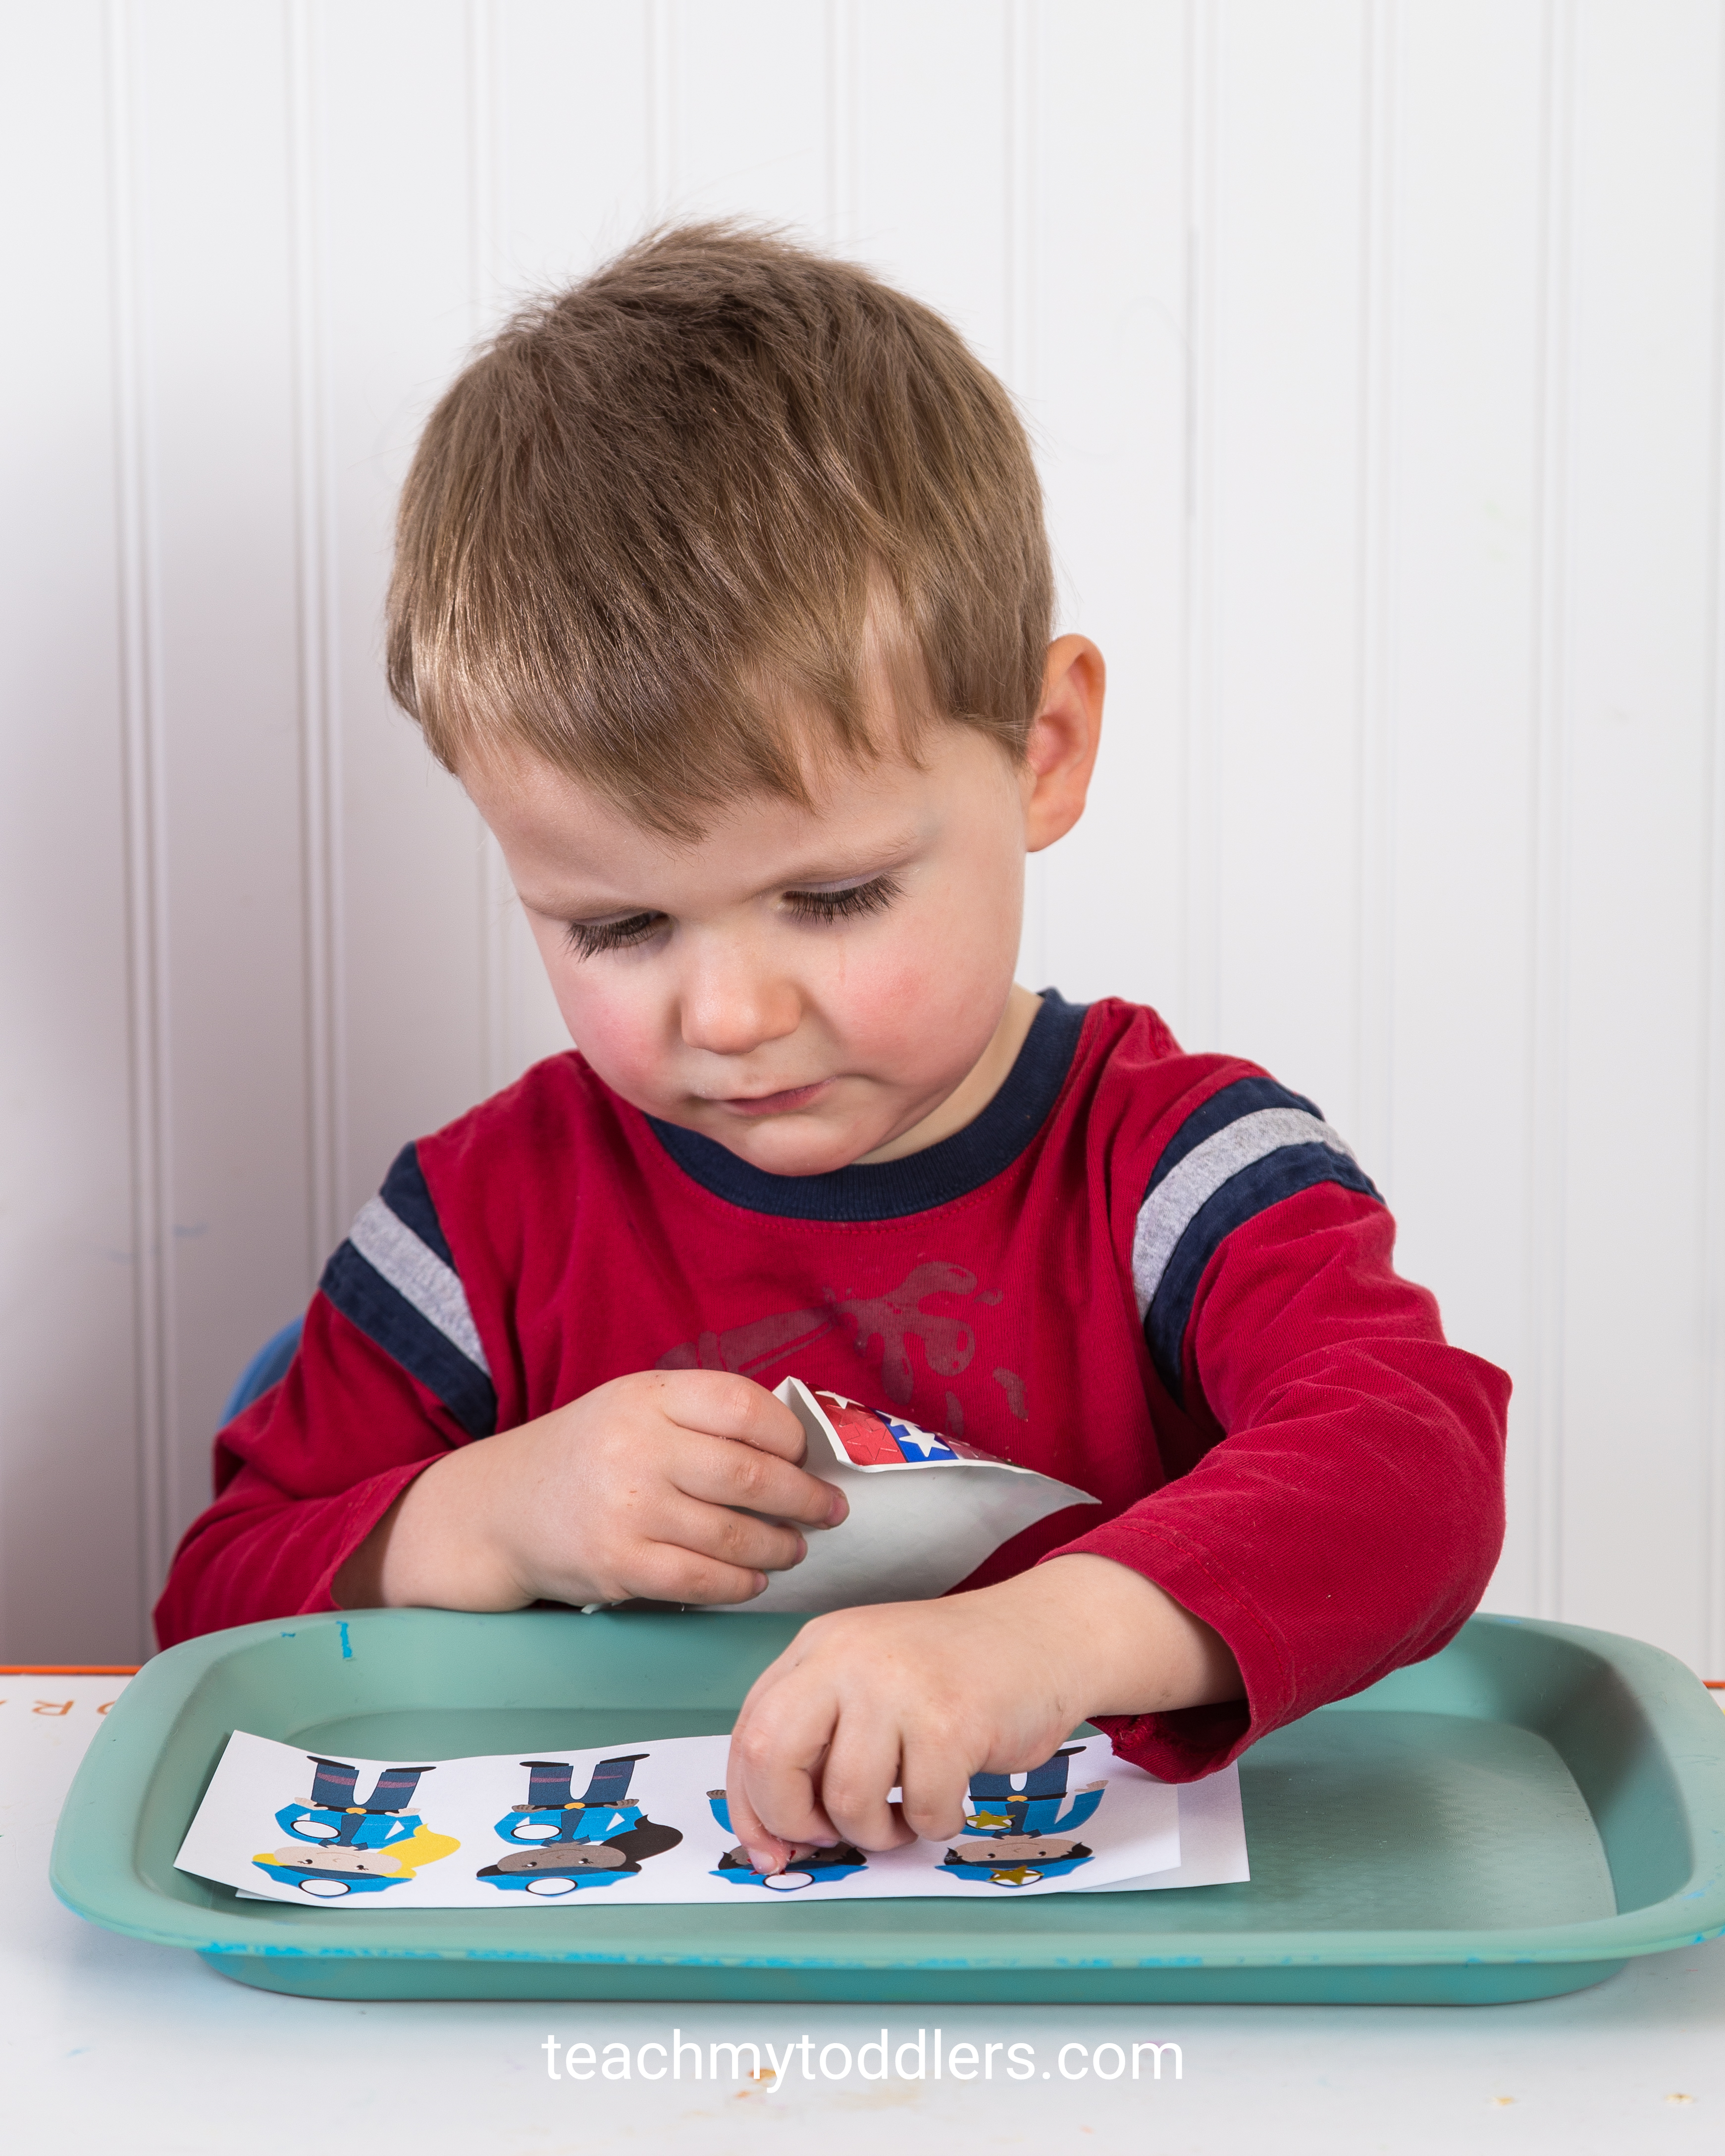 Use these awesome activities to teach toddlers the letter c is for community helpers